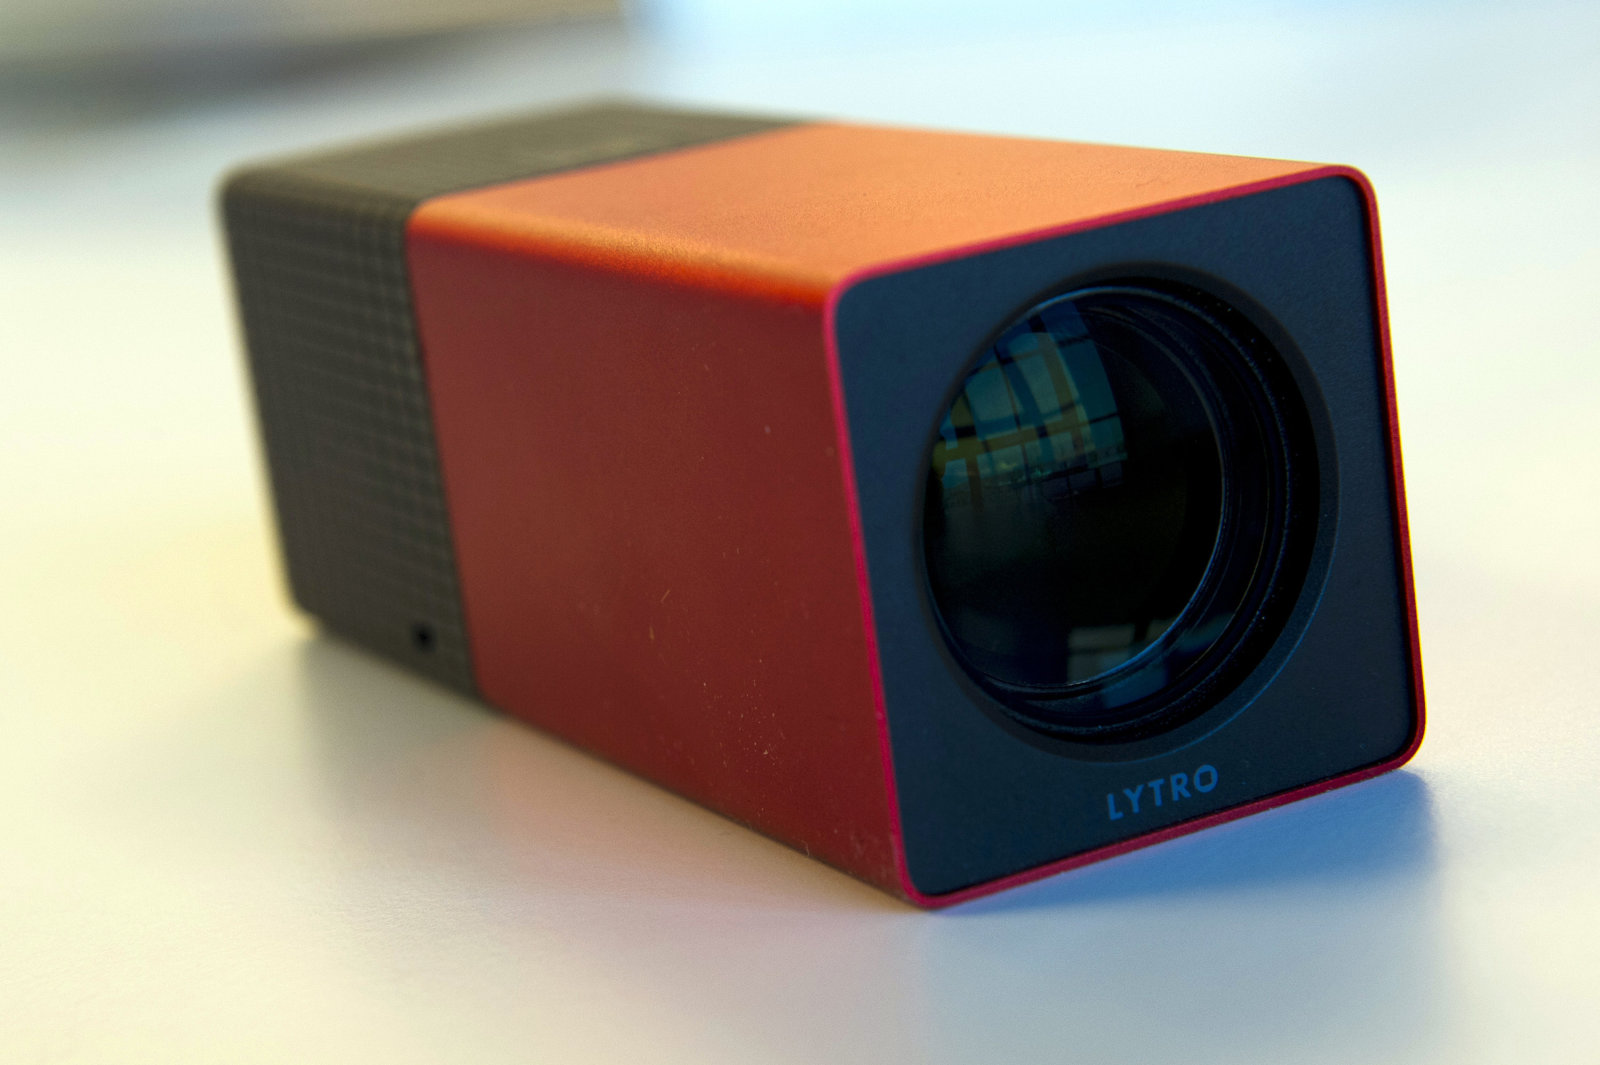 The Lytro camera is displayed for a photograph in San Francisco, California, U.S., on Friday, Feb. 17, 2012. Launched by a Mountain View, California, start-up to capitalize on research conducted at Stanford University, the Lytro introduces the concept of a living photo that can be adjusted on the fly by photographer and viewer alike. Photographer: David Paul Morris/Bloomberg via Getty Images